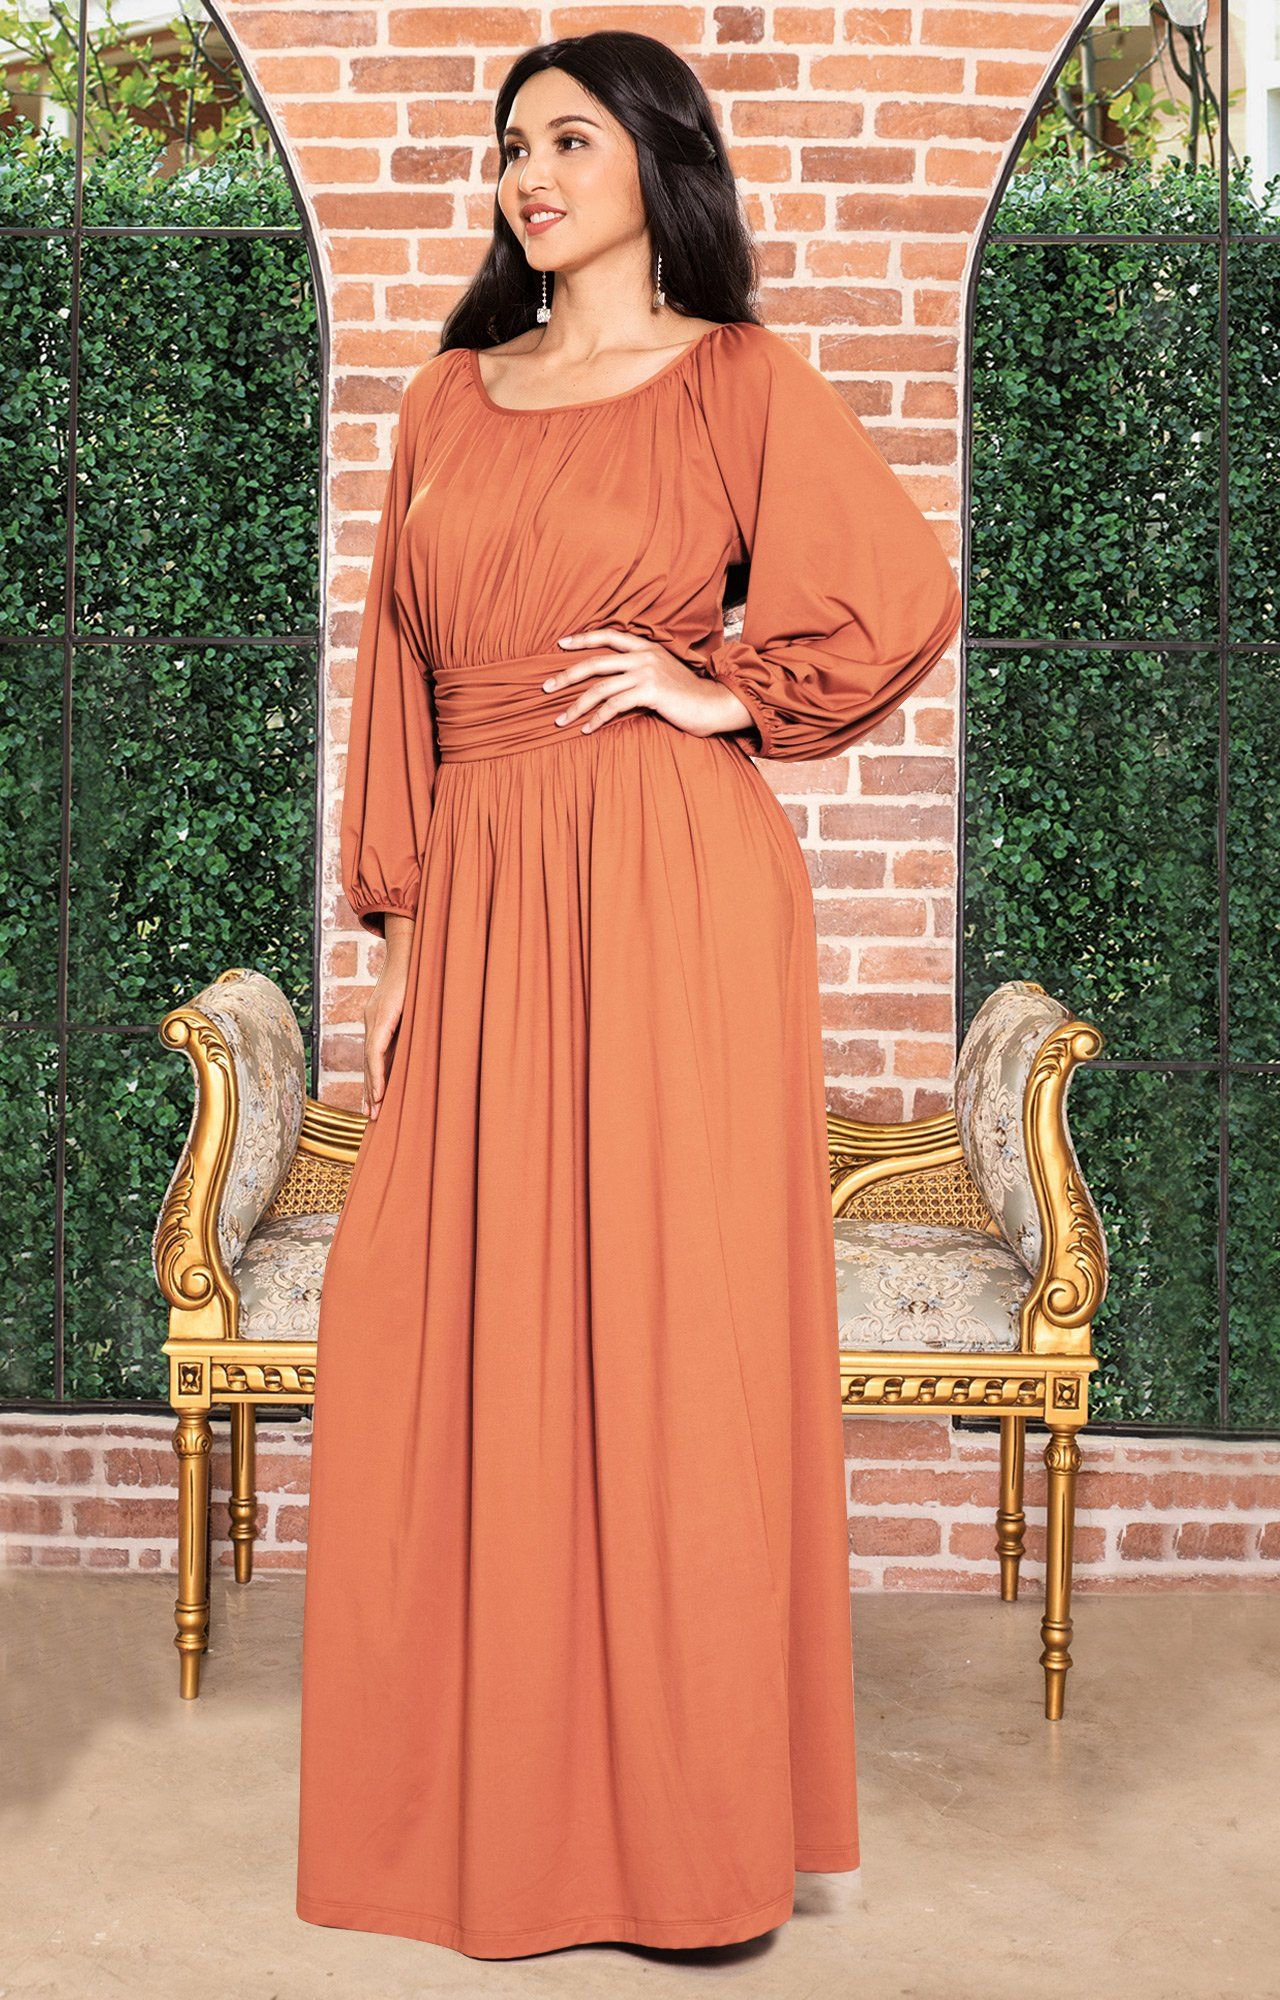 b28c1ba7bcd ... KOH Plus Size Women Long Sleeve Sleeves Vintage Peasant Empire Waist  Fall Loose Flowy Fall Winter Casual Maternity Abaya Gown Gowns Maxi Dress  Dresses ...